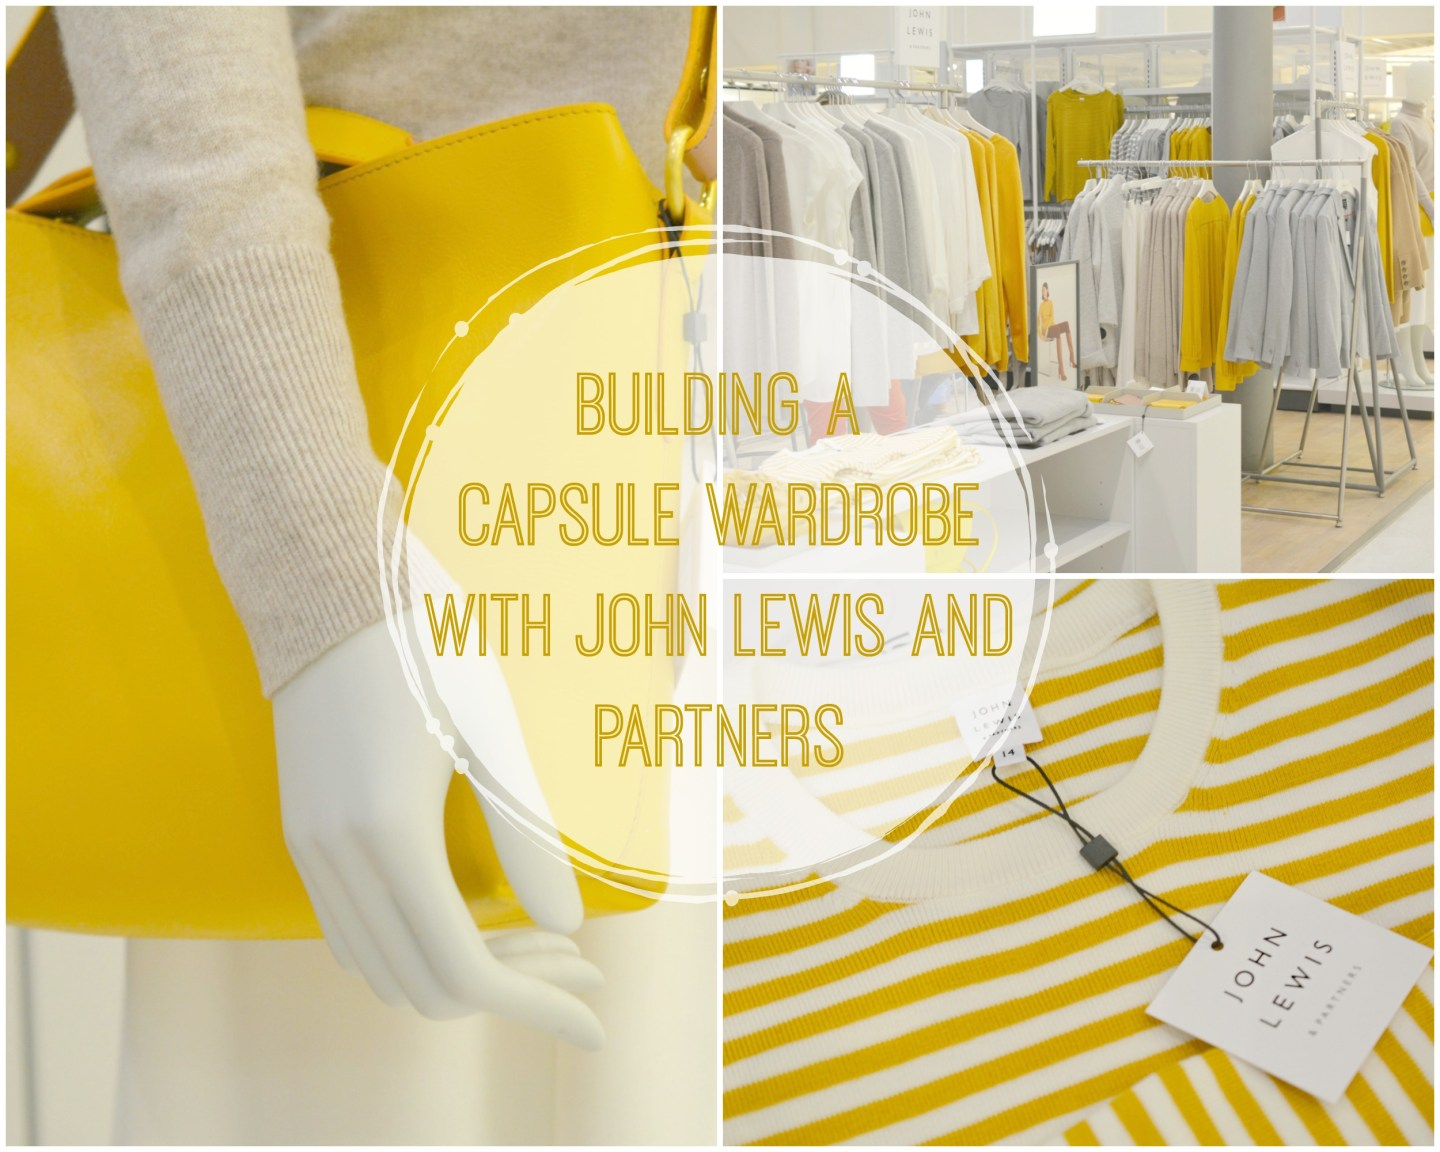 FASHION – Building a Capsule Wardrobe with the New Collection from John Lewis and Partners